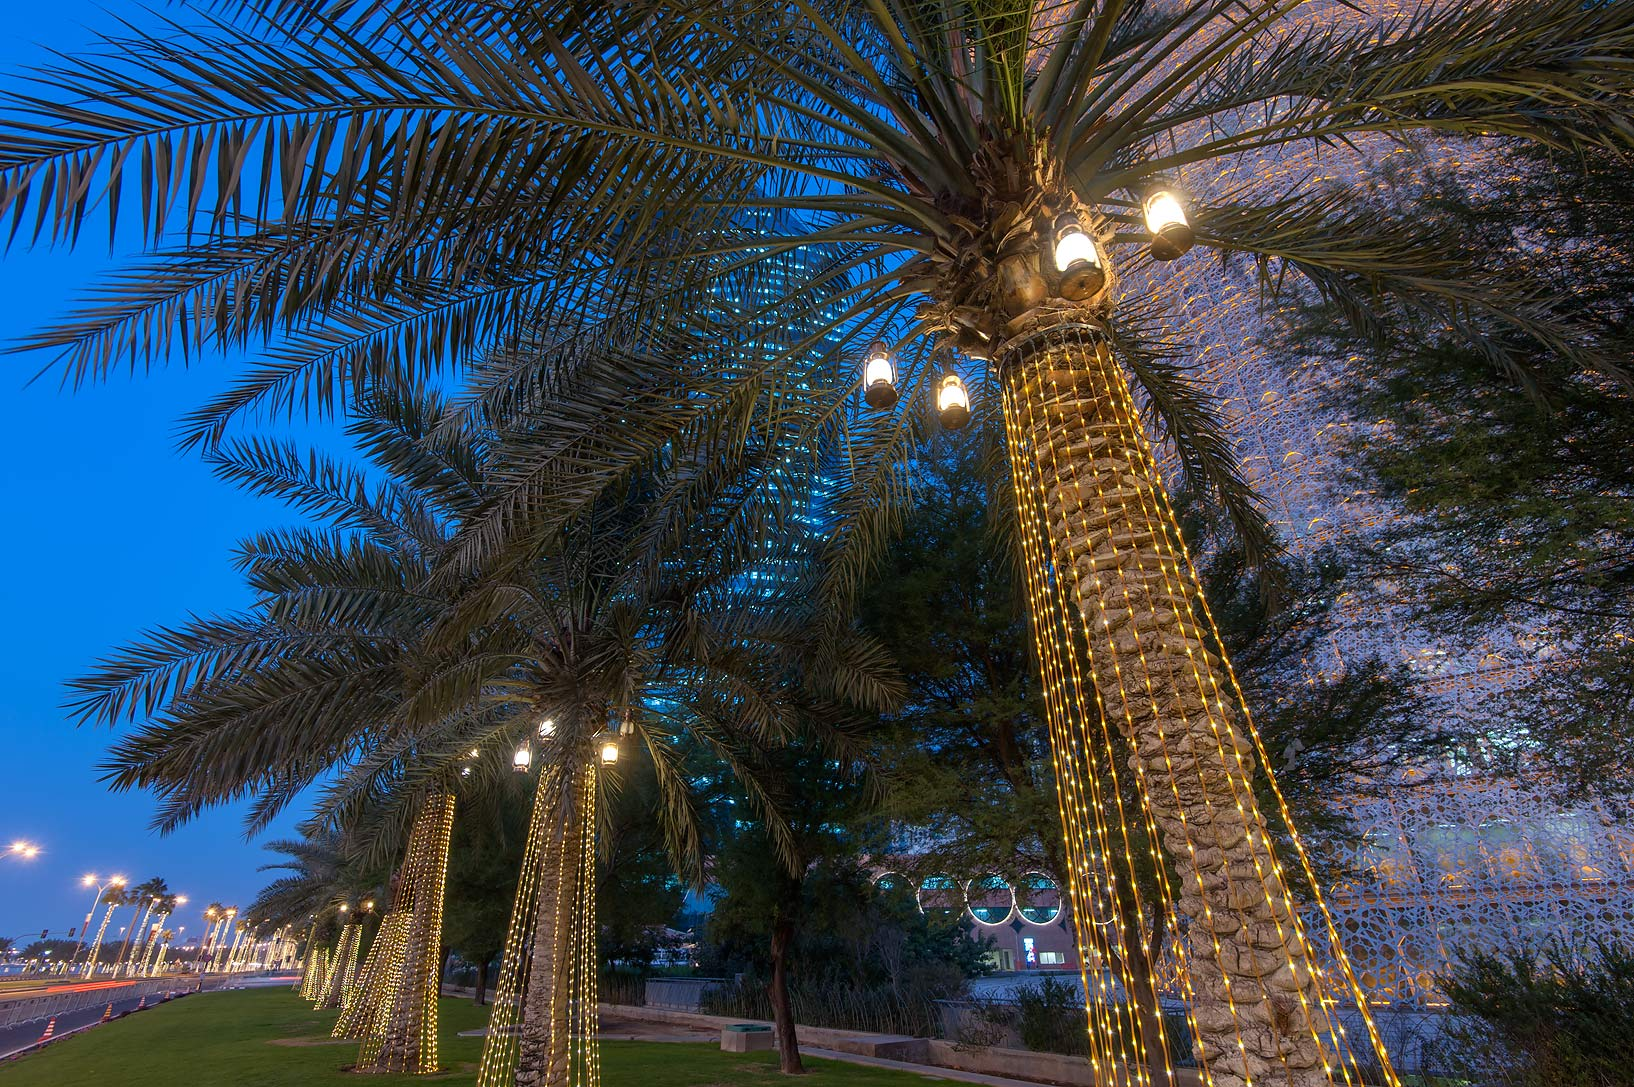 Lights on palm trees on Corniche in West Bay. Doha, Qatar